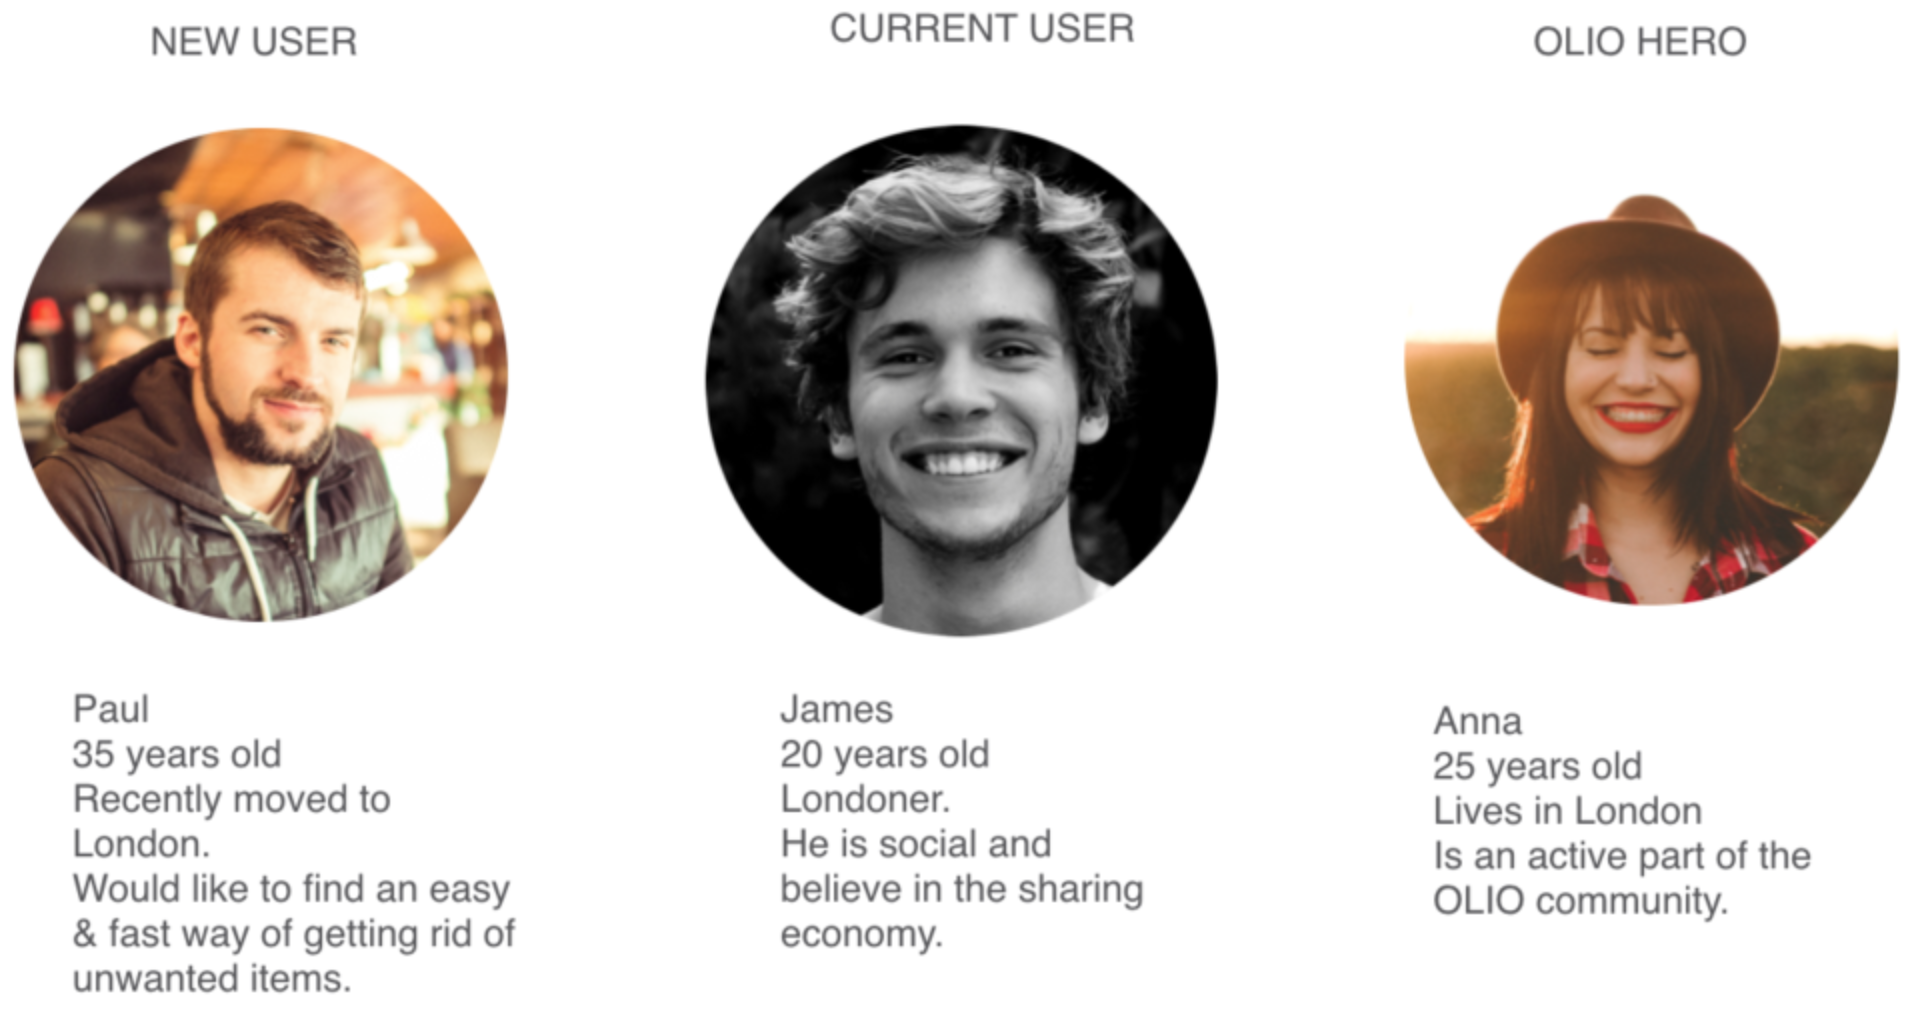 To better visualise our users, we created 3 personas and decided to focus on Paul, our new user.